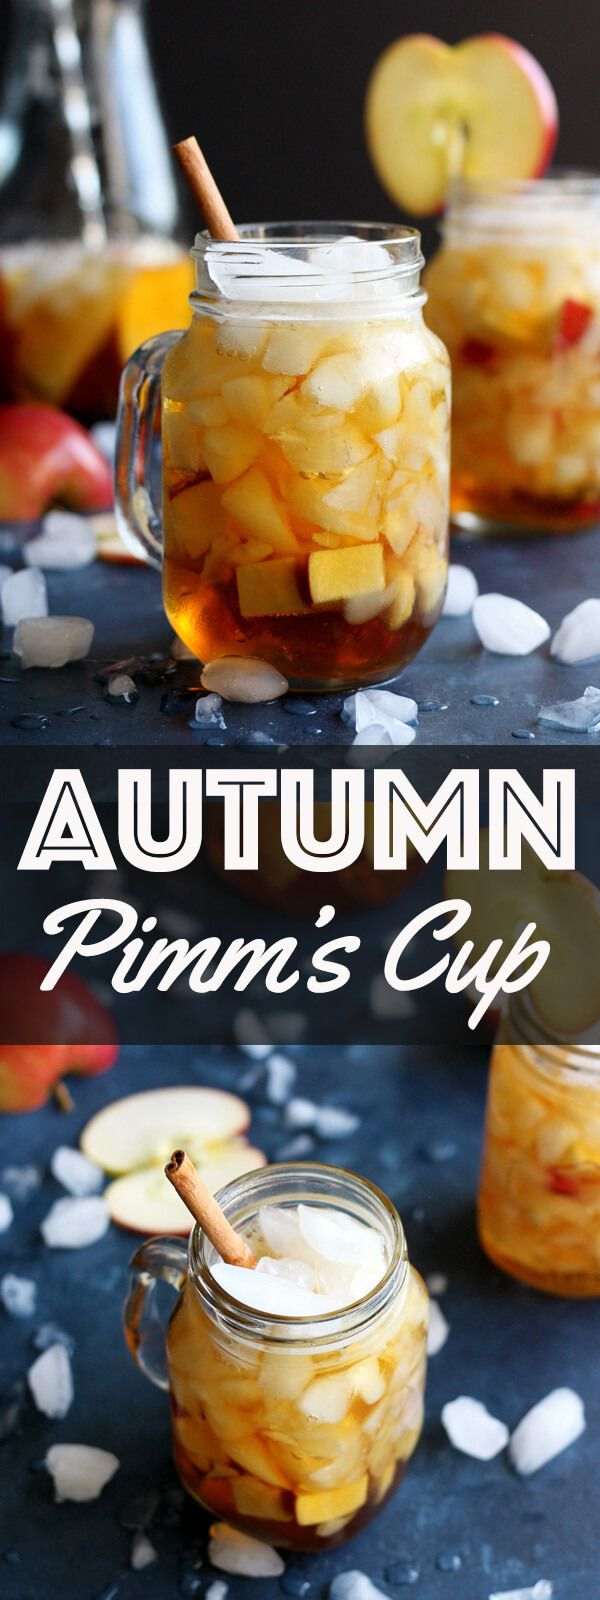 This Autumn Pimm's Cup is the Fall version of the popular Summer Pimm's cup cocktail. This easy light cocktail recipe is perfect for your holiday menu. | wildwildwhisk.com